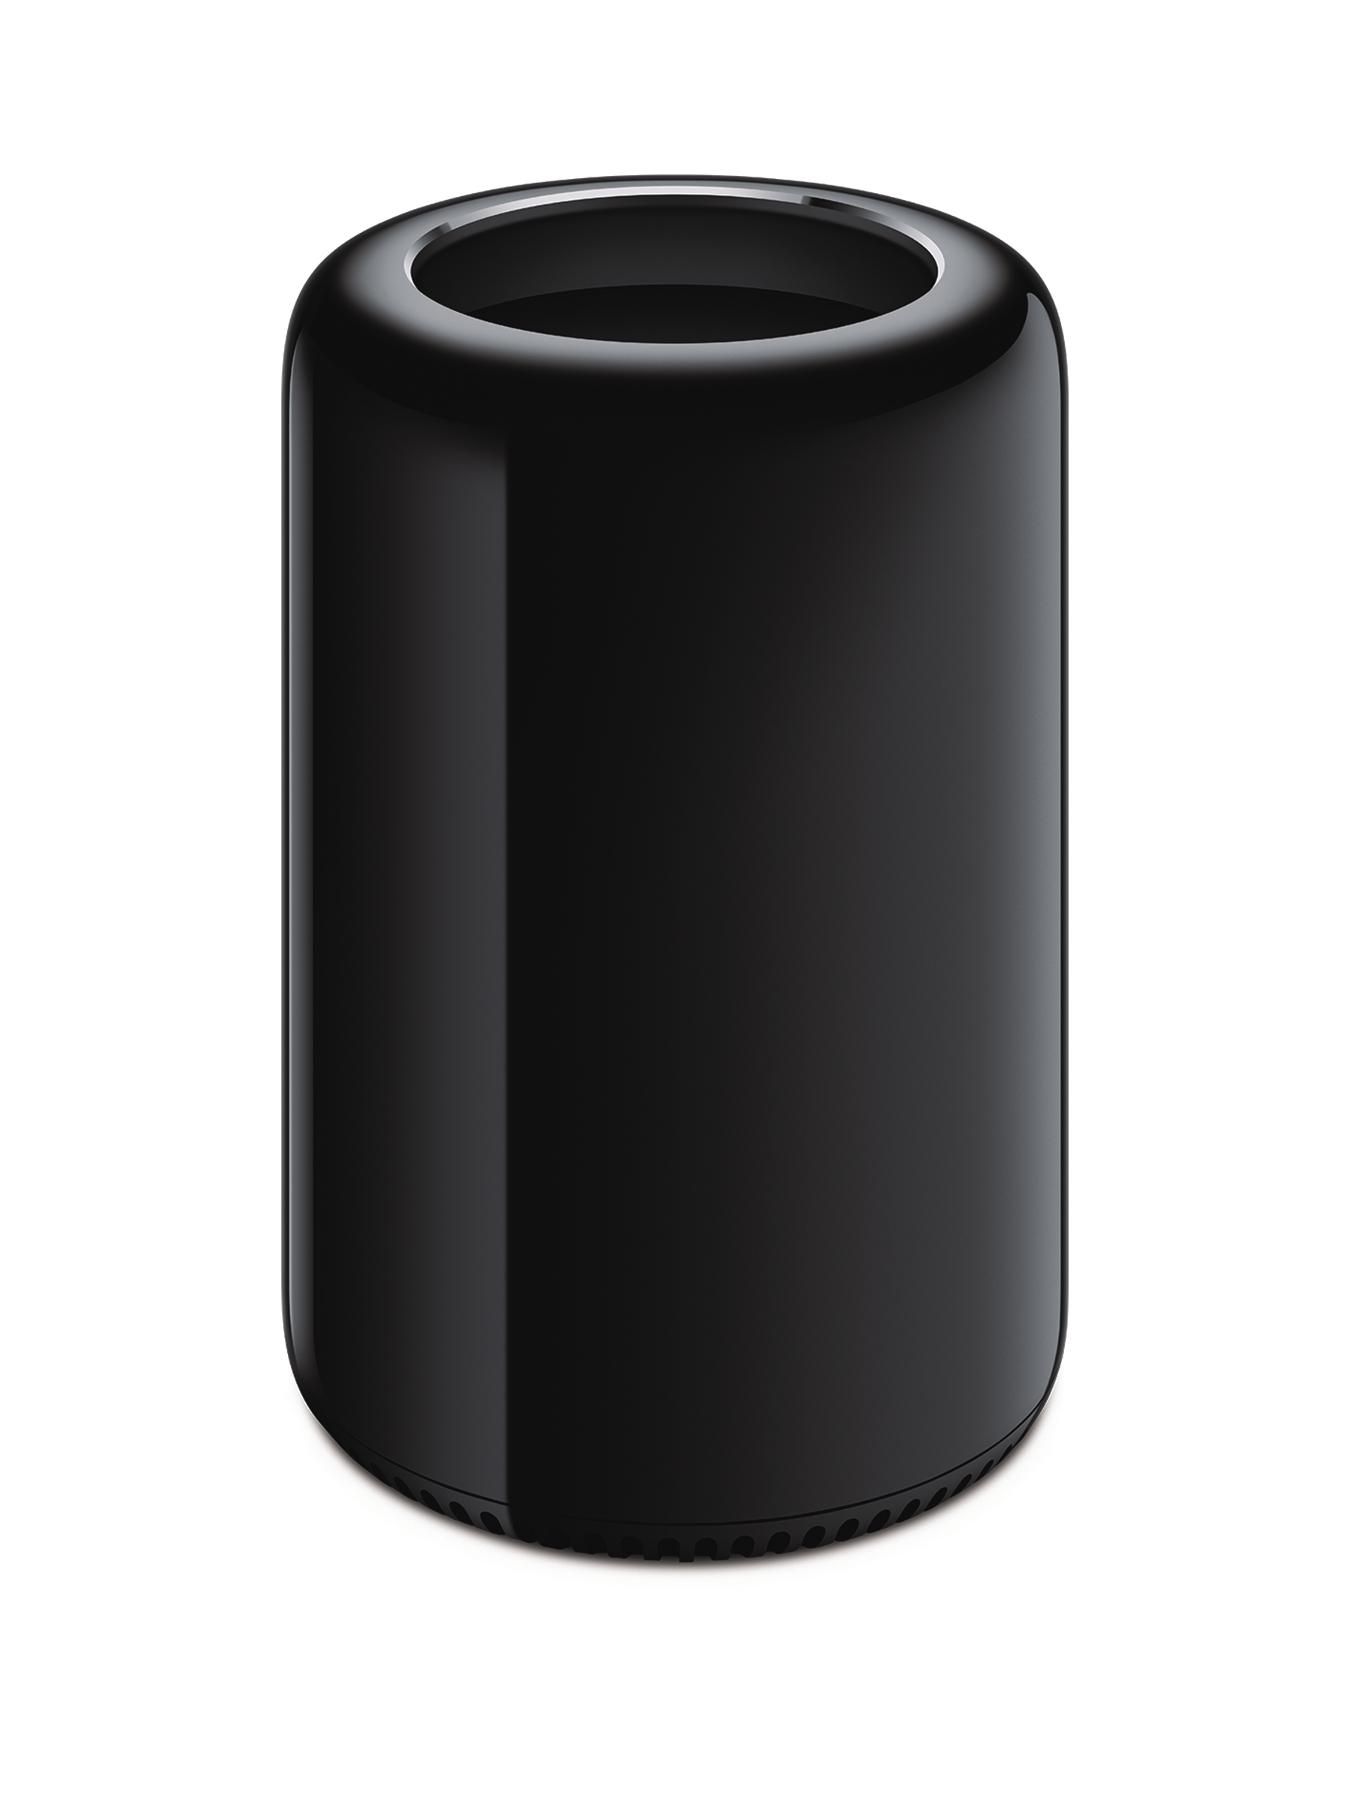 Mac Pro 6-Core Intel Xeon E5 processor 16GB RAM 256GB Flash